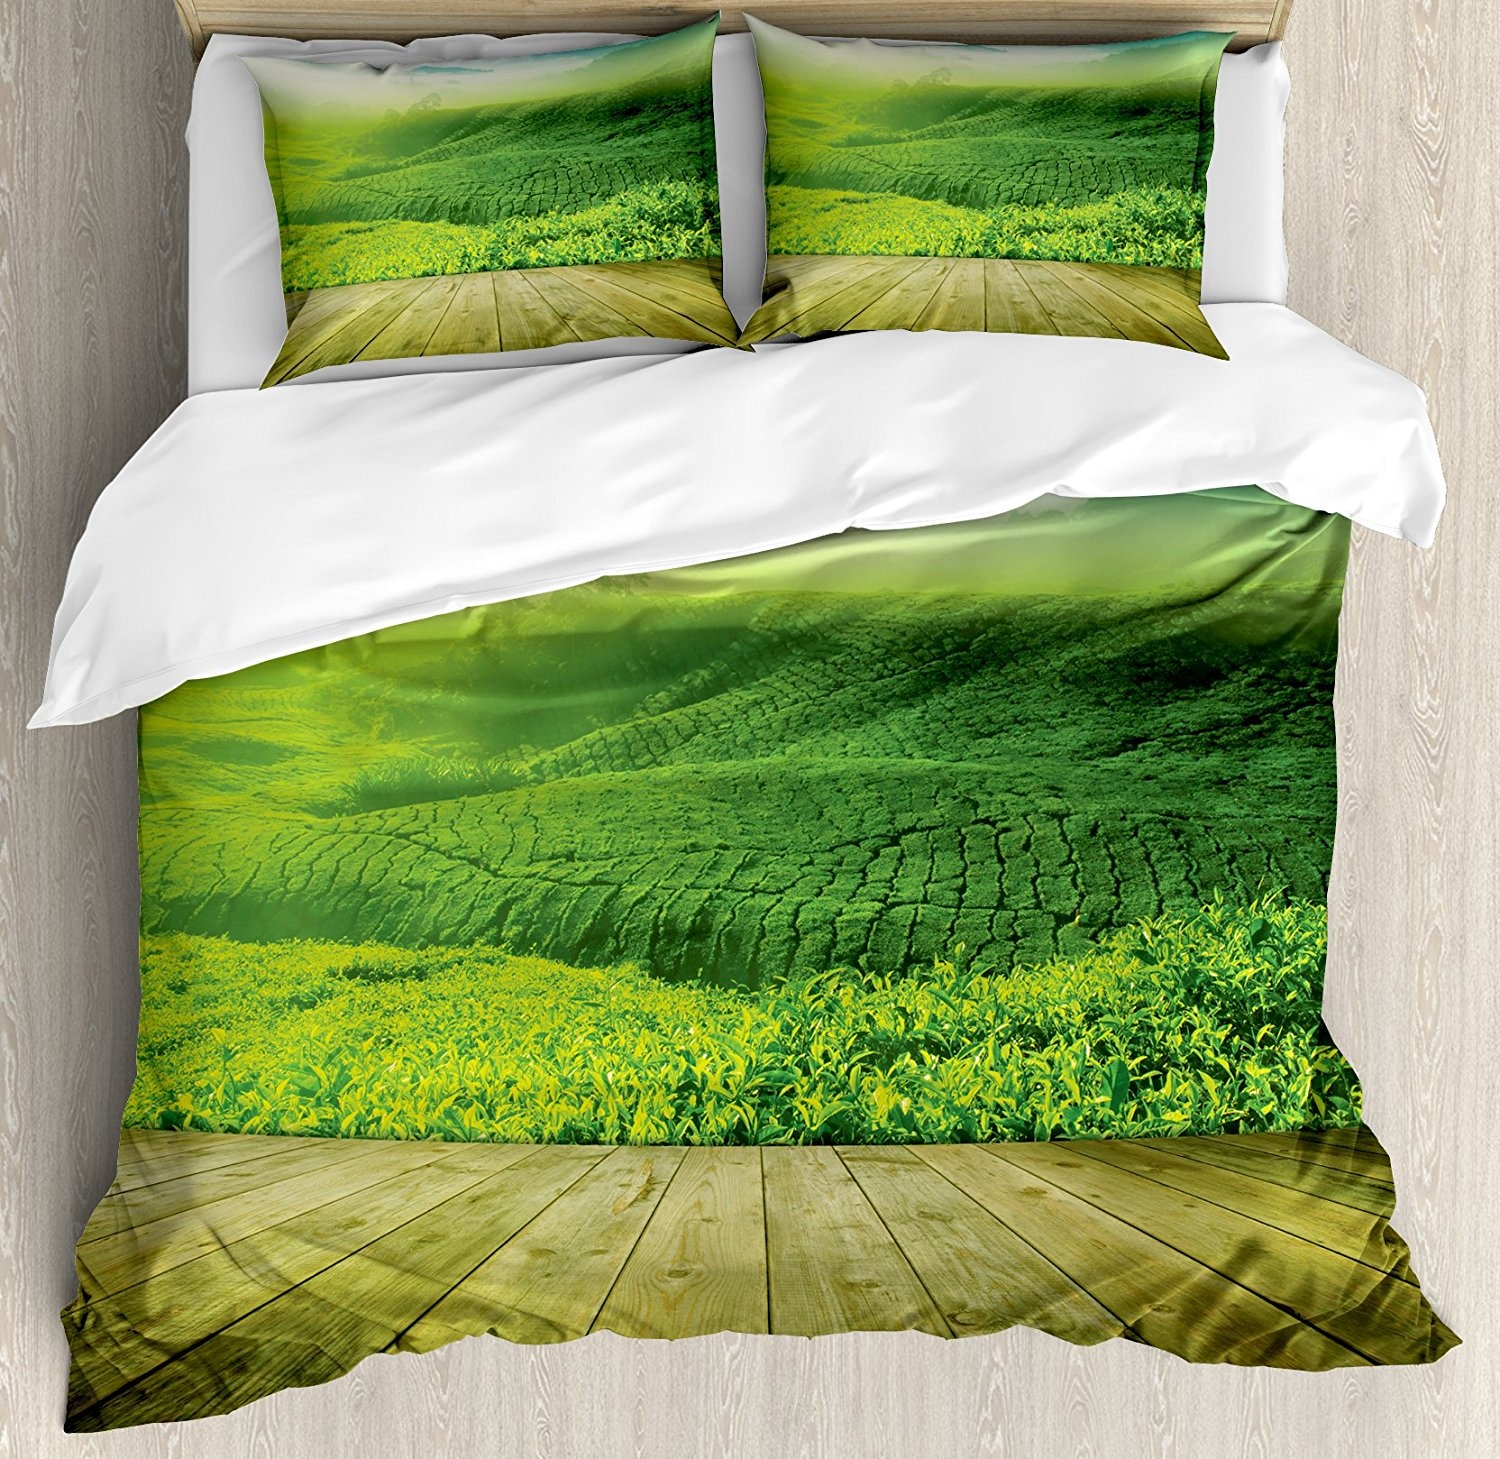 King-Multi-1-Green-King-Size-Duvet-Cover-Set-by-Ambesonne-Wood-Platform